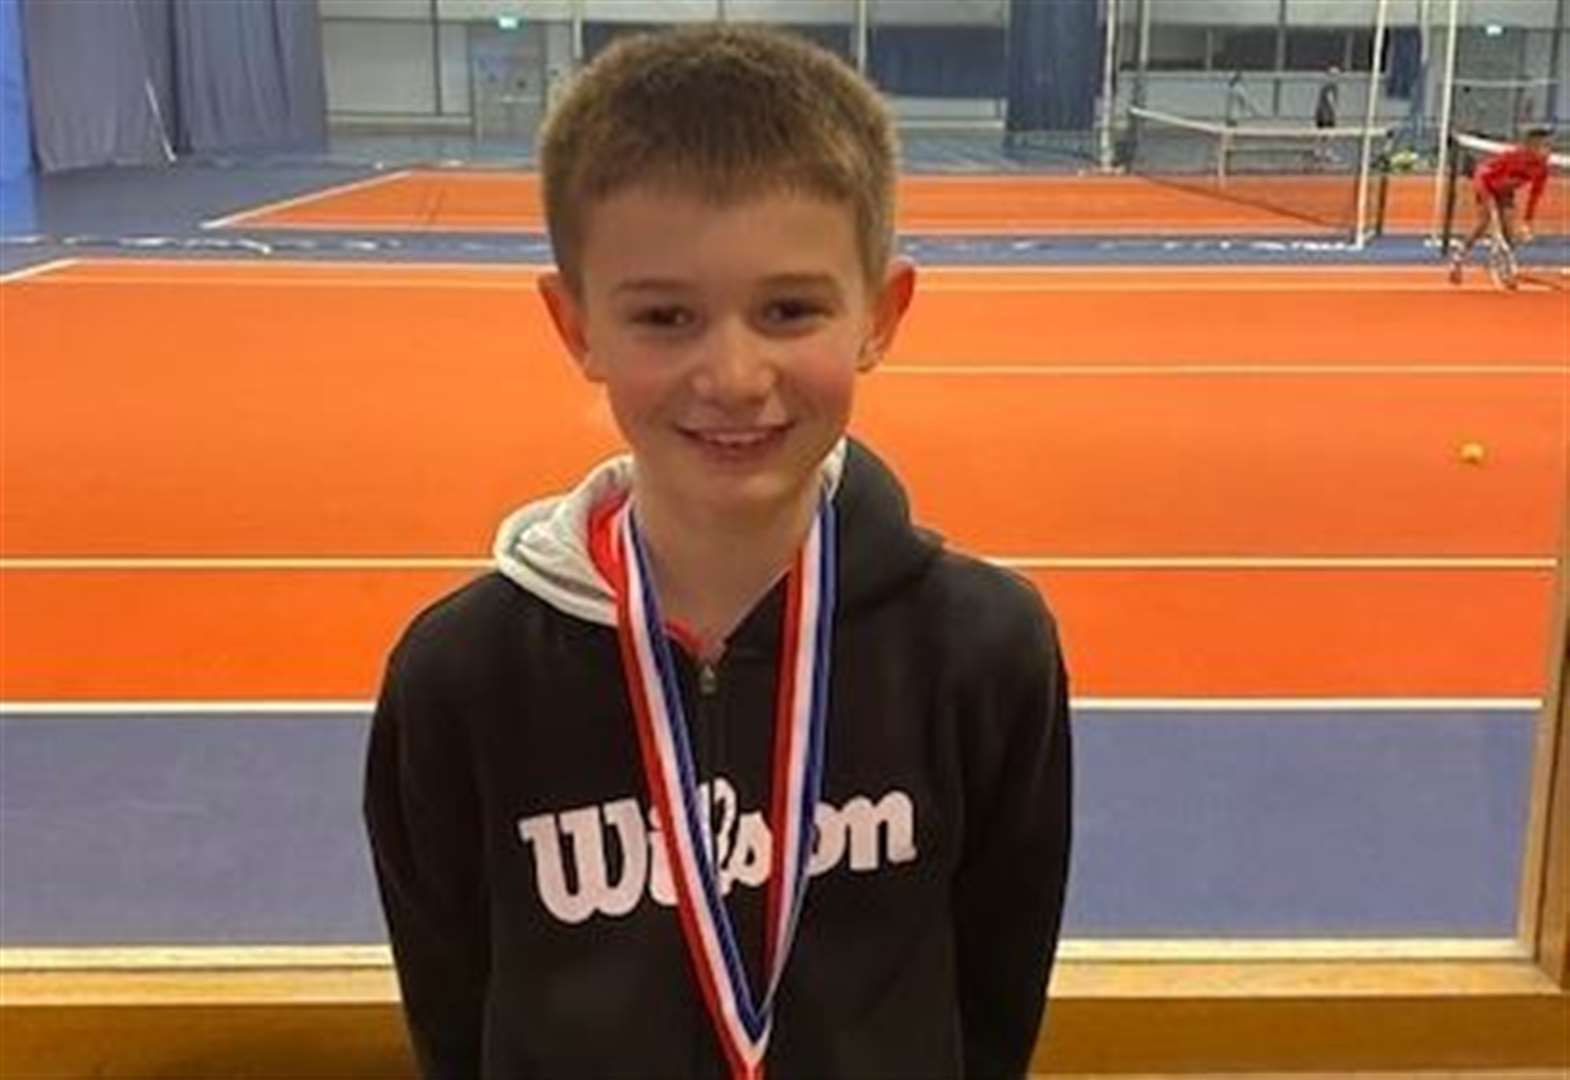 Impressive run for young tennis star